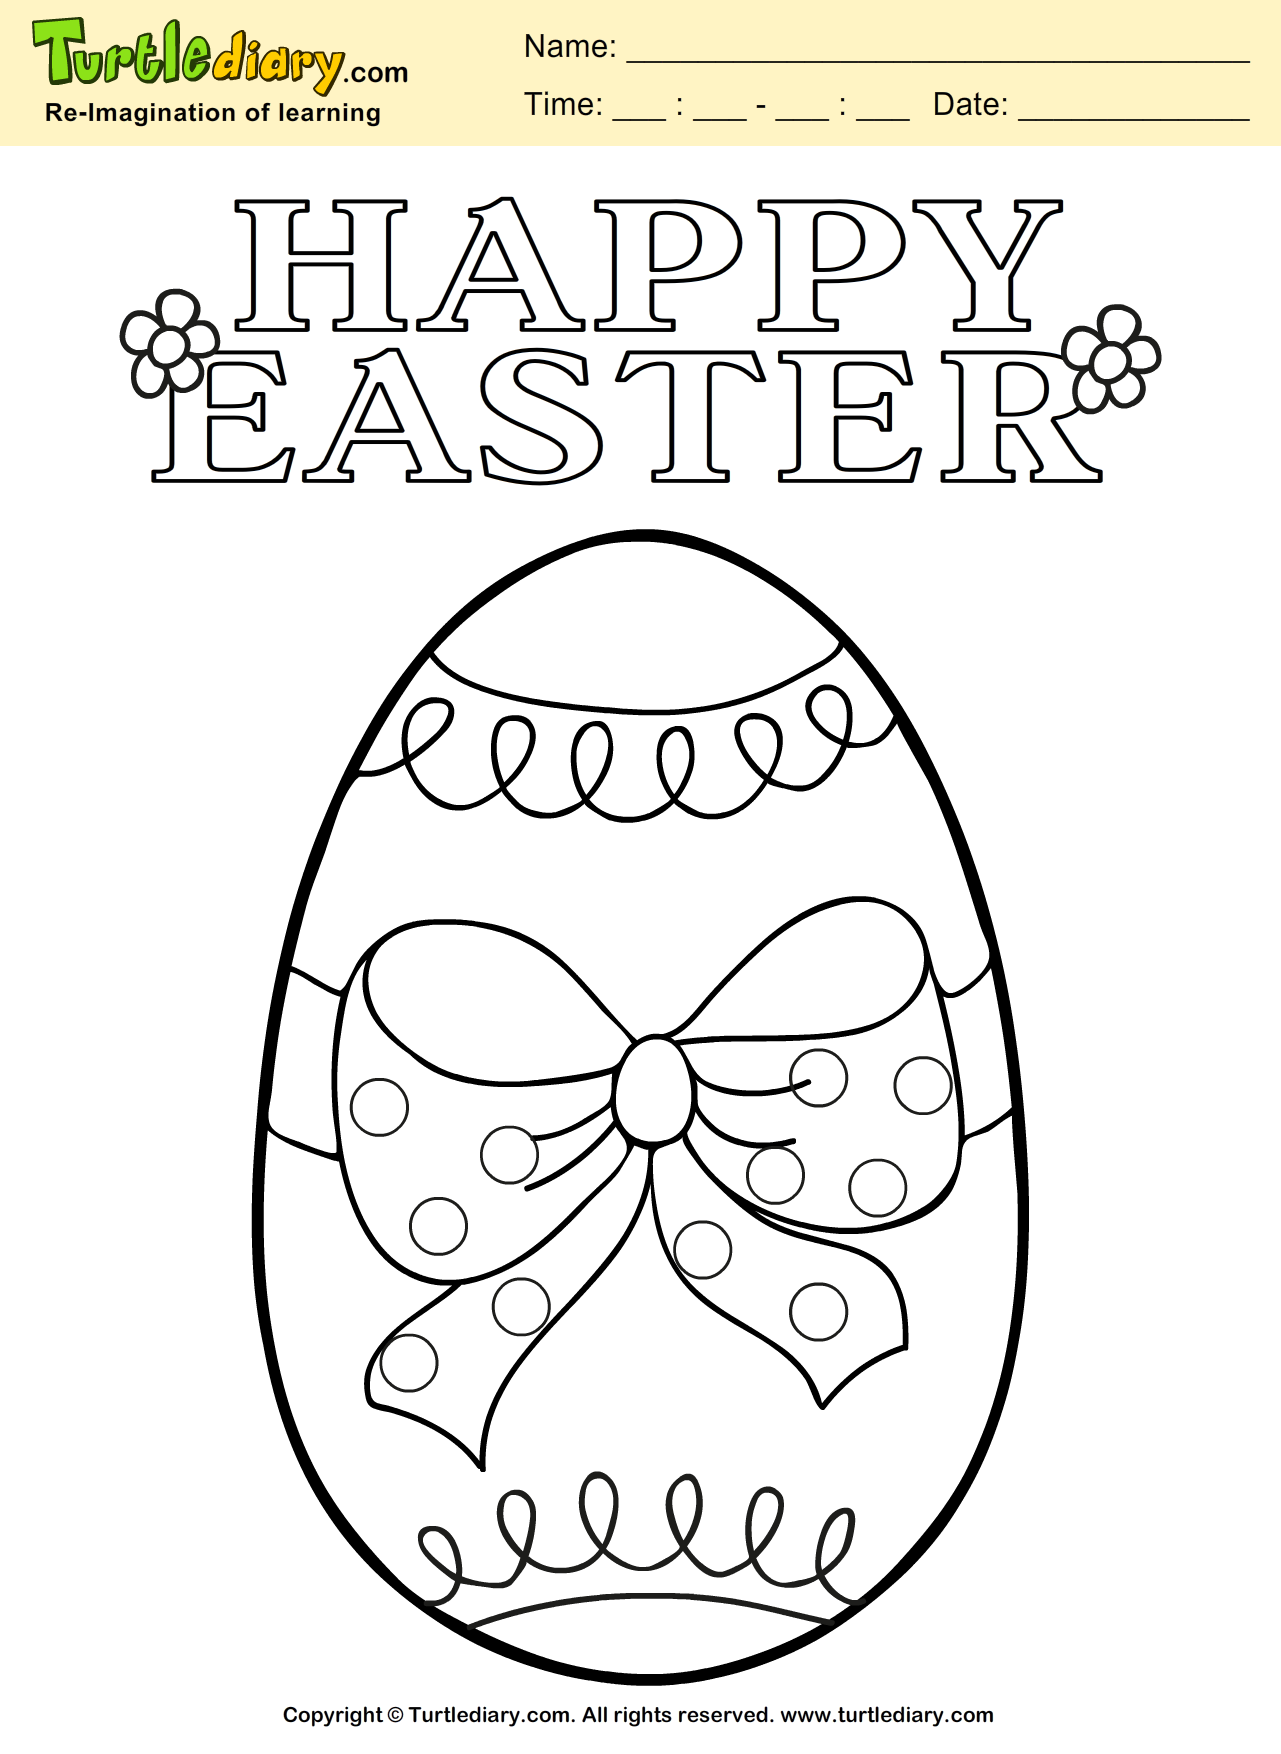 Easter Egg Coloring Page Coloring Sheet Easter Egg Coloring Pages Coloring Easter Eggs Coloring Sheets